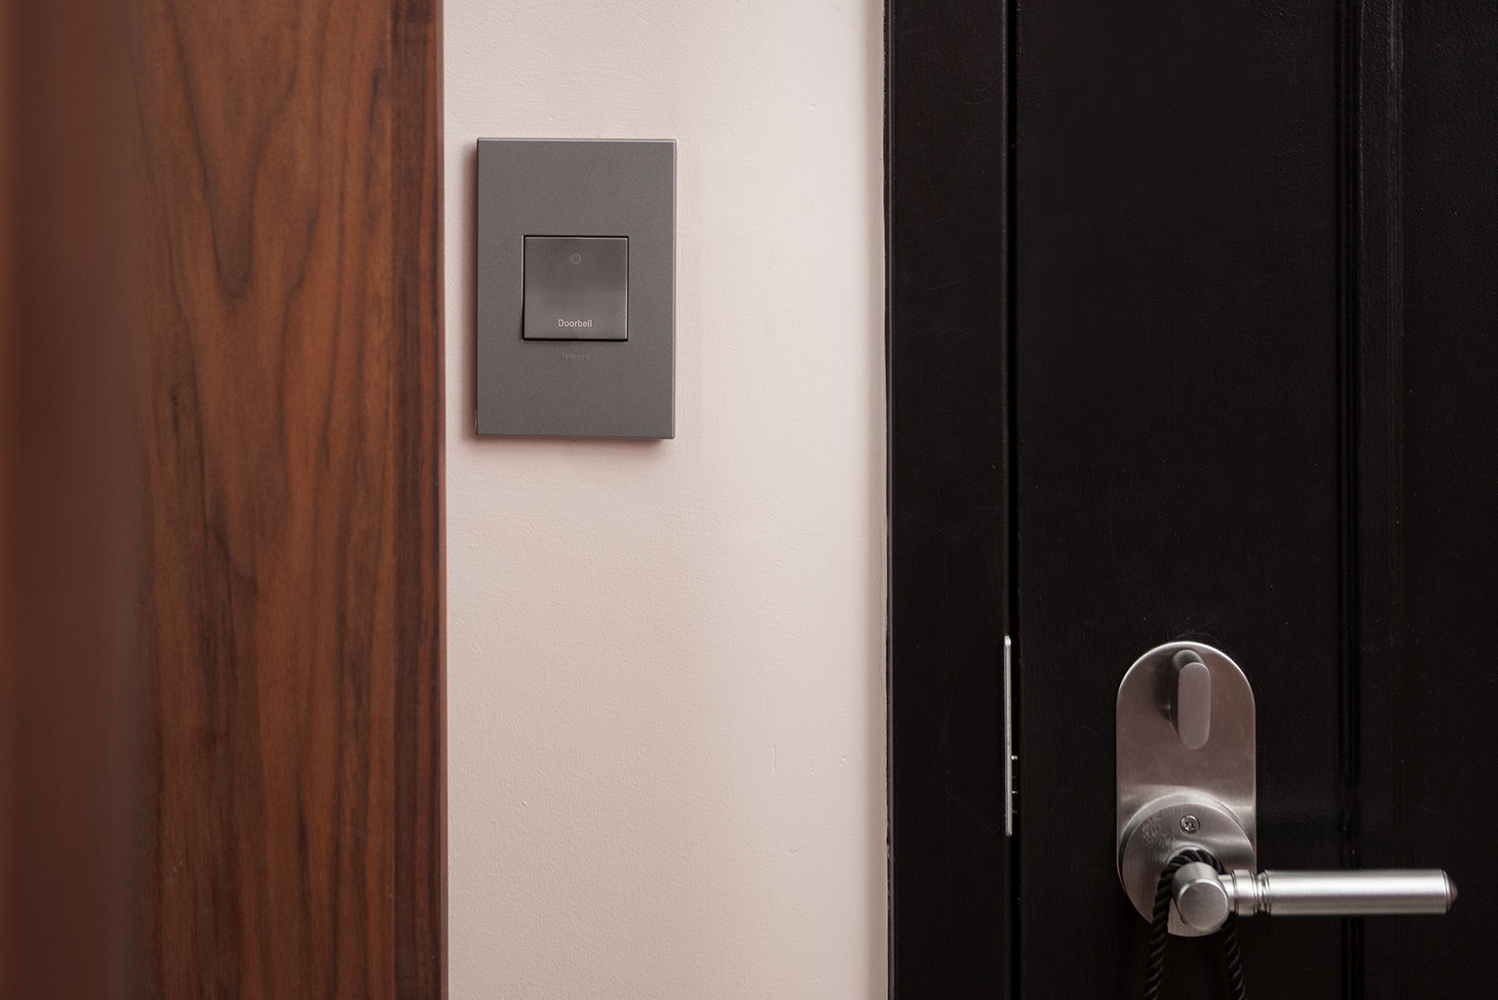 Each switch is factory-engraved to ensure quality and consistency, including master, doorbell and nightlight.